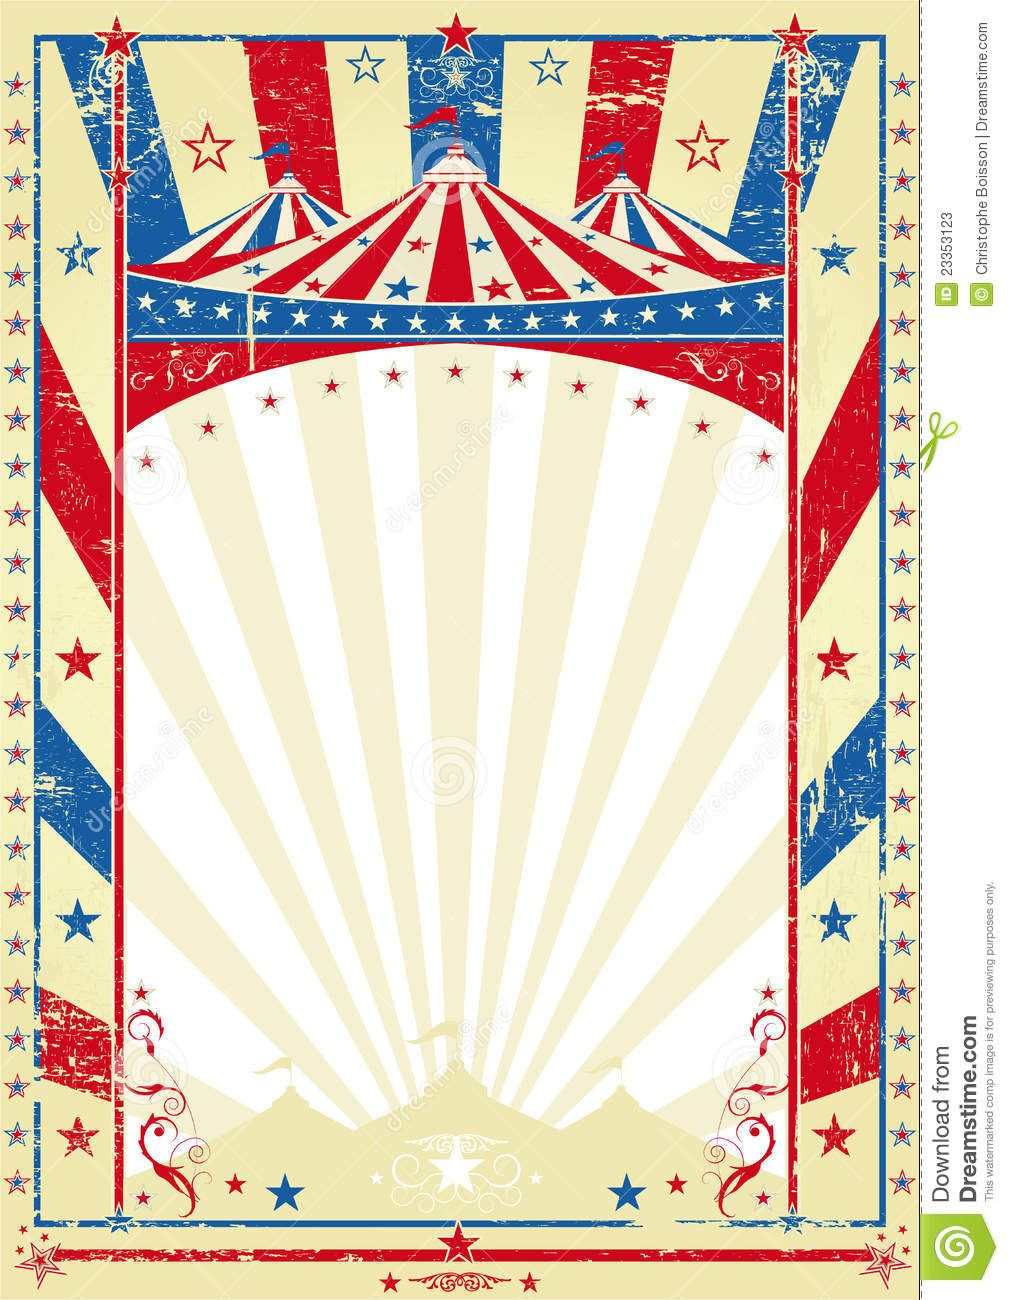 small resolution of image result for free carnival clipart images